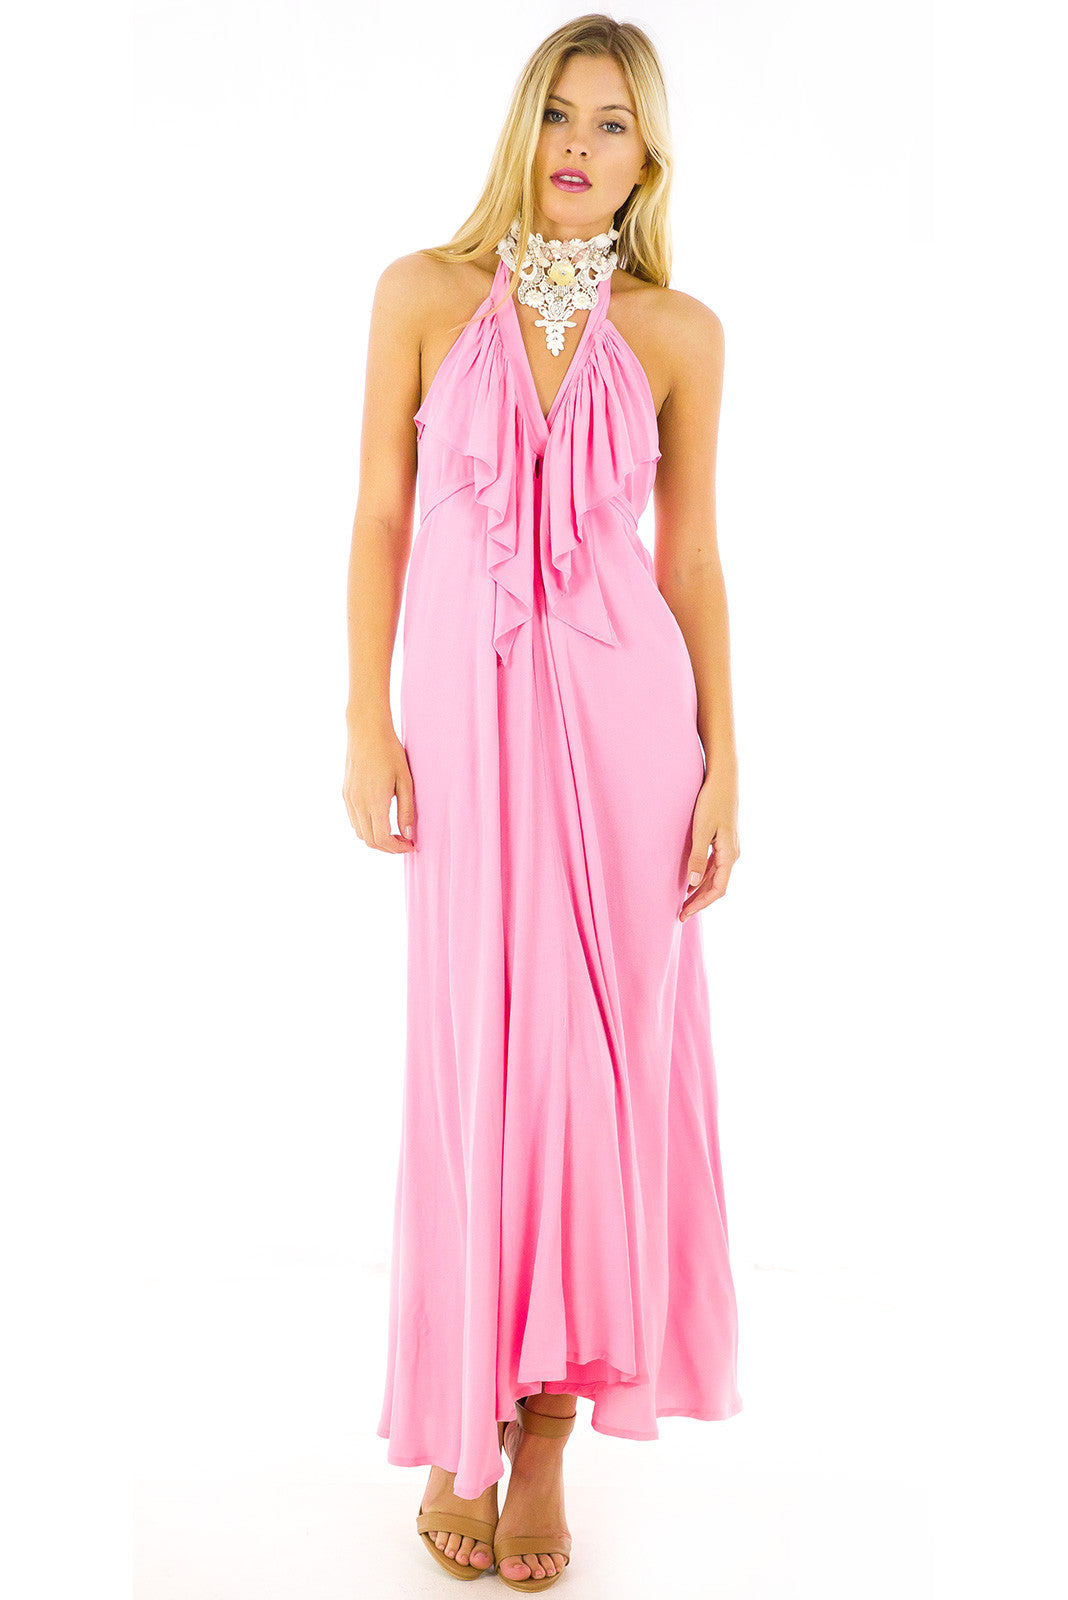 Candy Pink Belle Starr Maxi Dress backless dress party dress